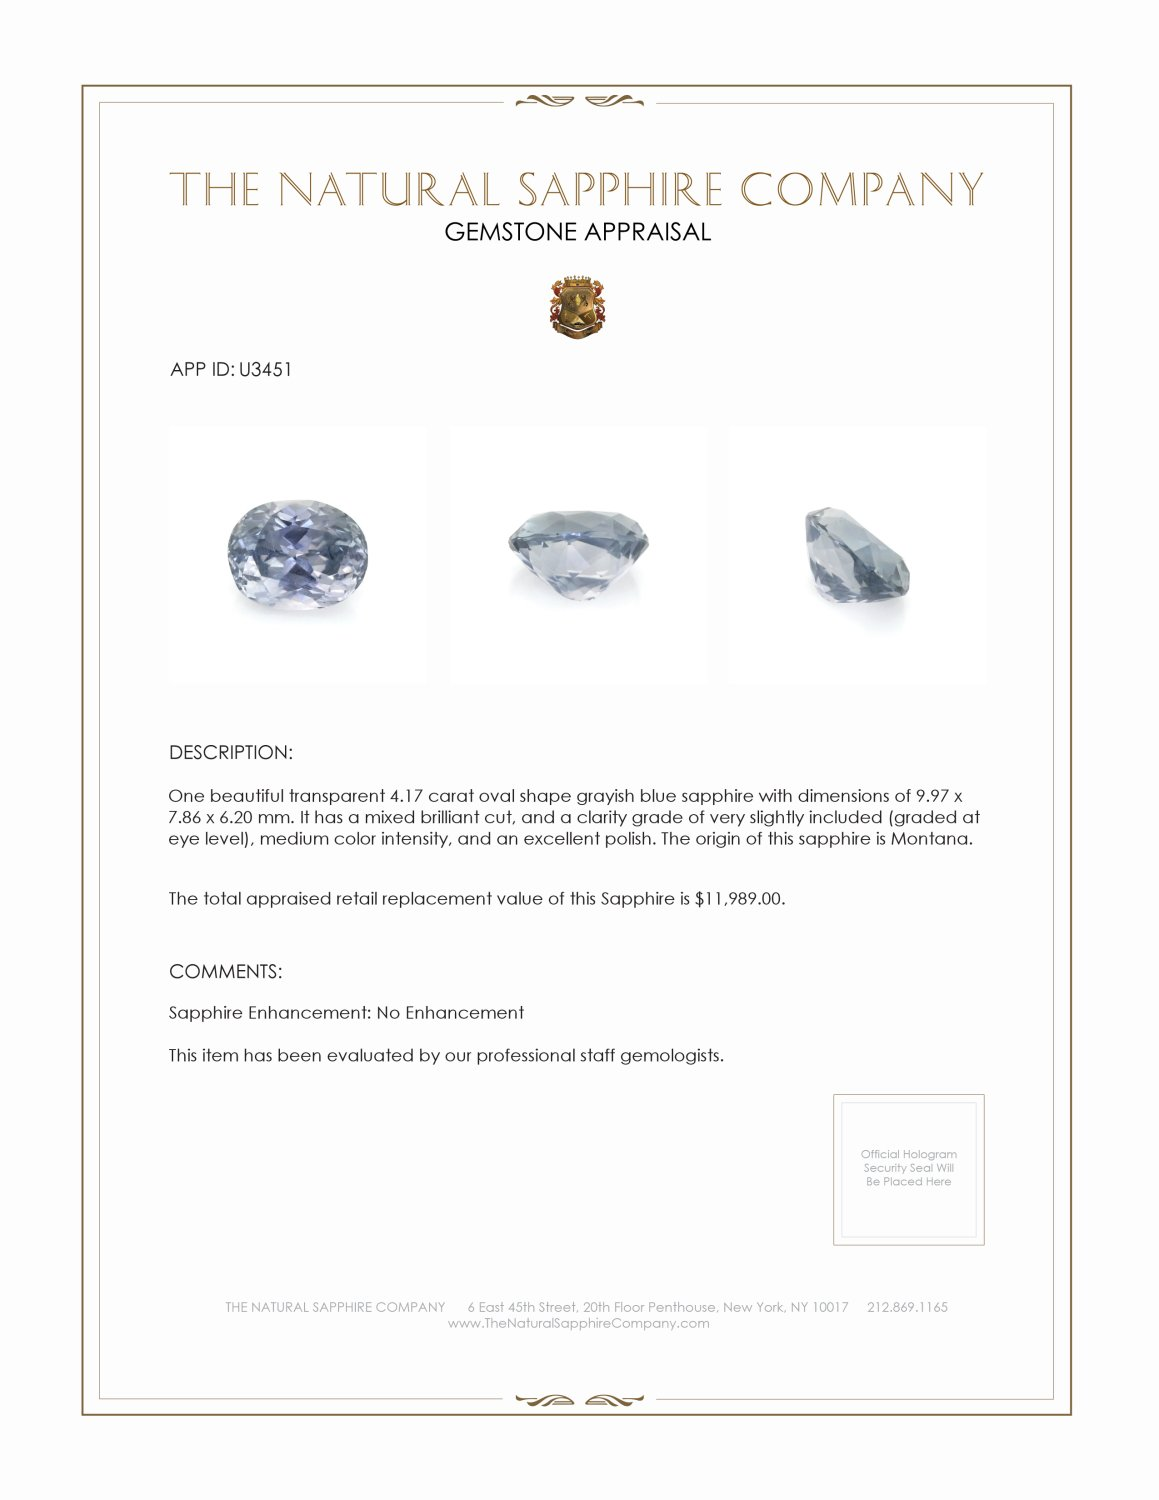 Natural Untreated Greyish Blue Sapphire U3451 Certification 3